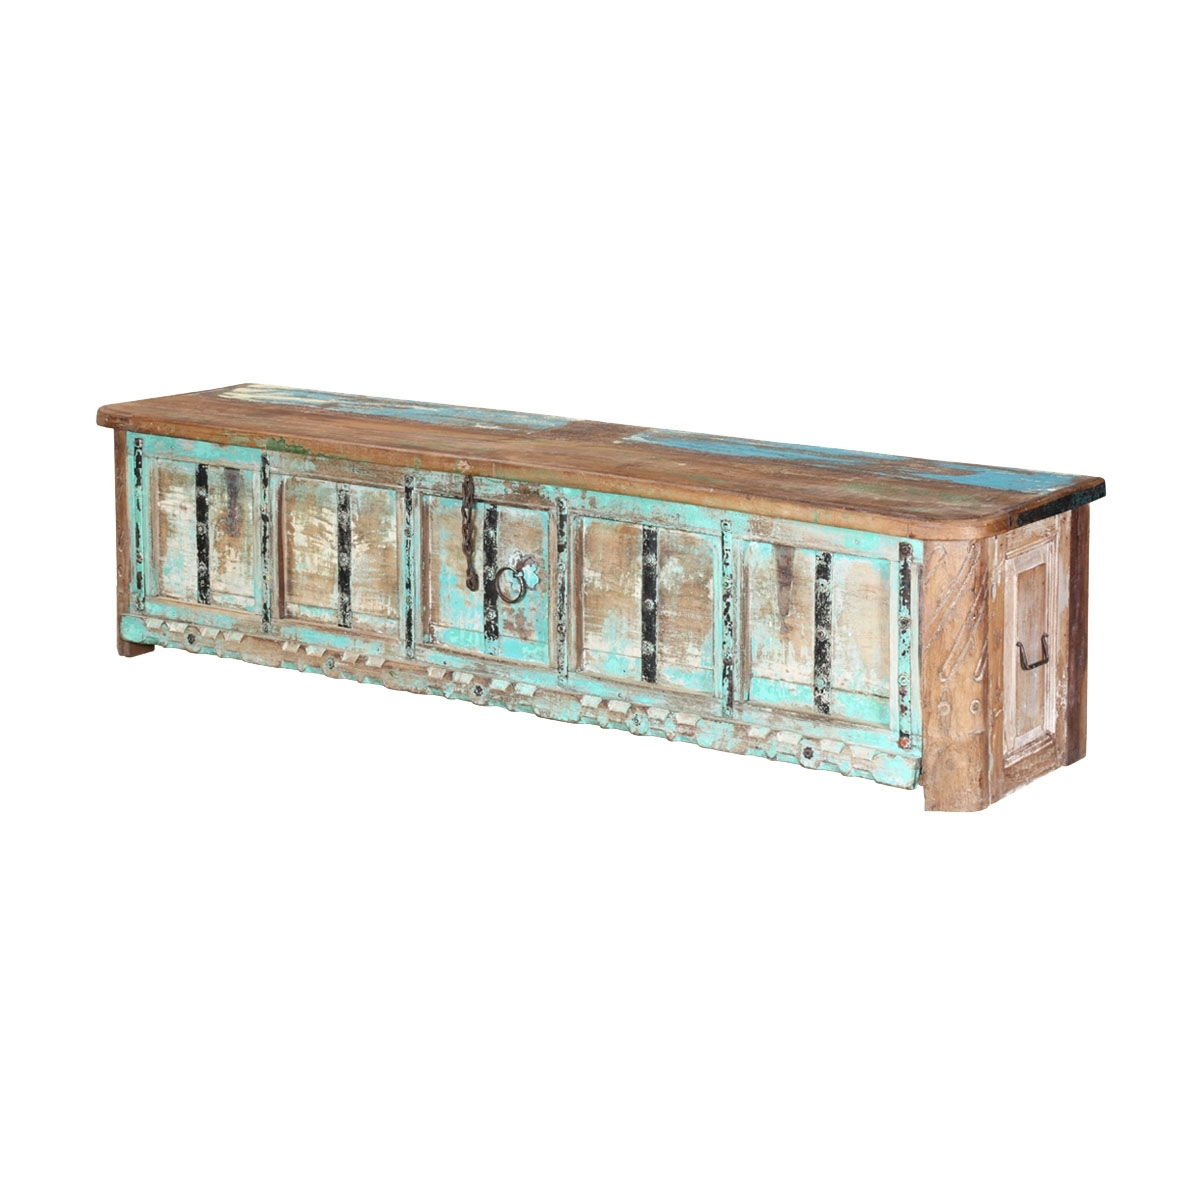 Boyce Rustic Turquoise Reclaimed Wood Large Storage Coffee Table Chest intended for Boyce Sideboards (Image 4 of 30)